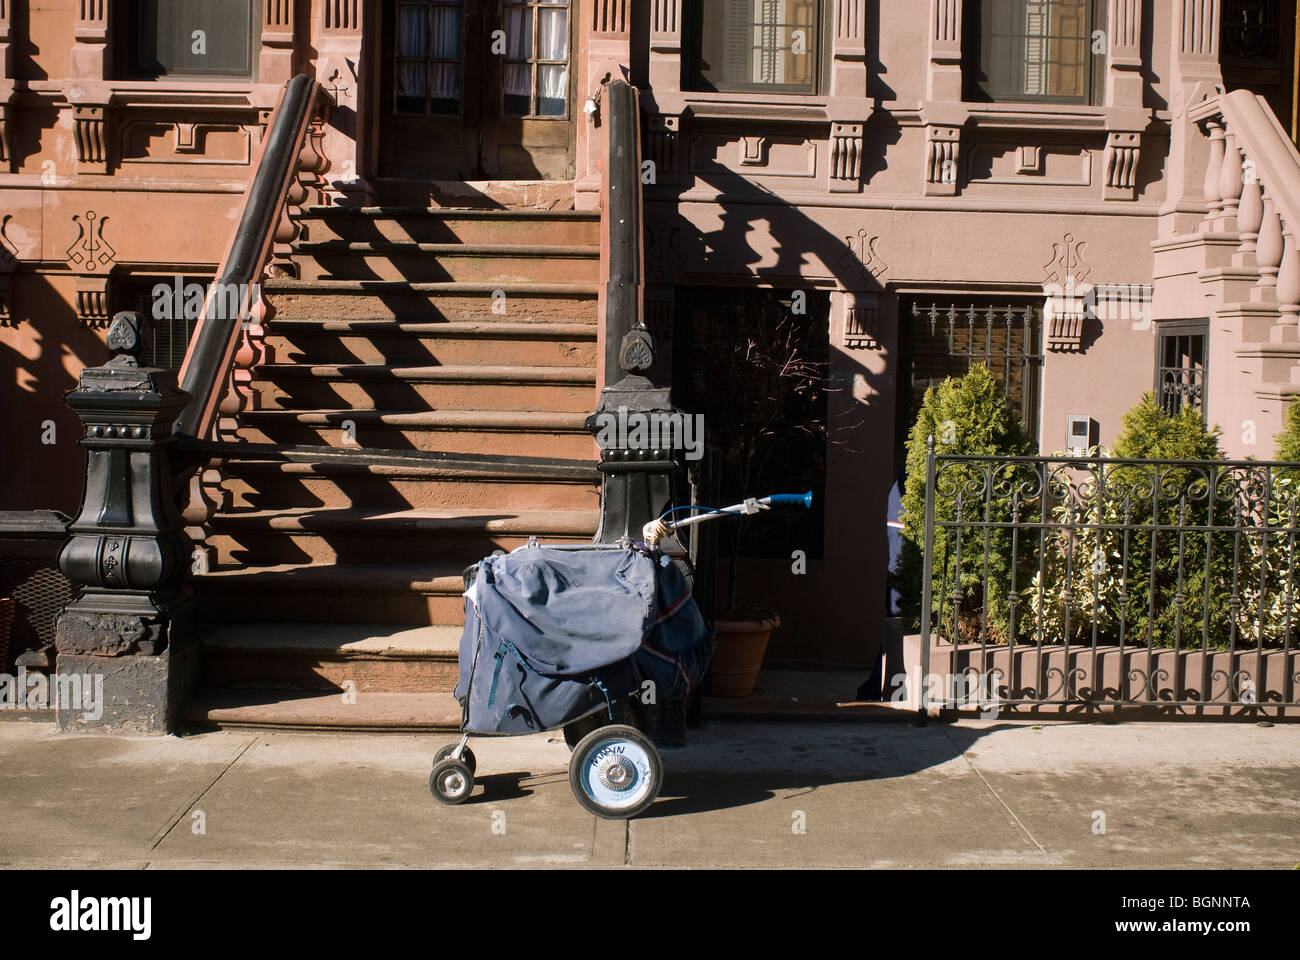 Mail Carrier Stock Photos & Mail Carrier Stock Images - Alamy